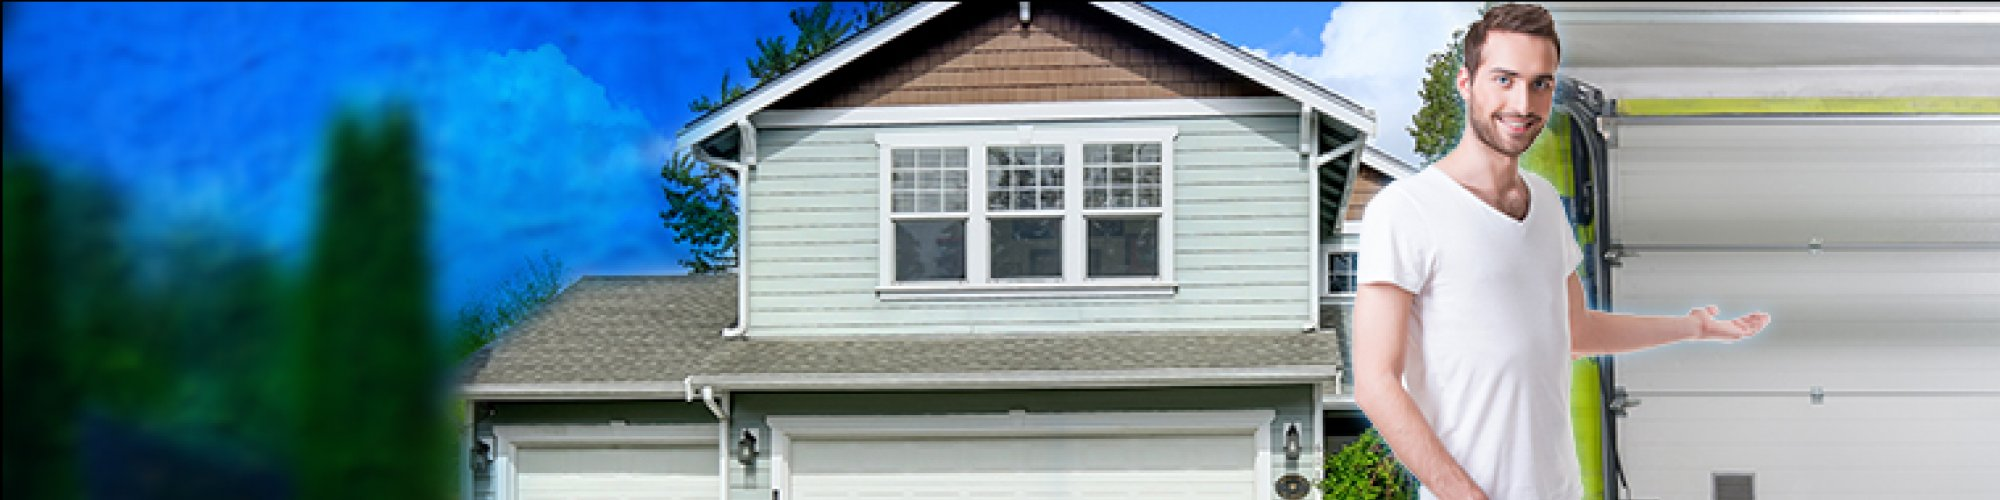 Garage door repair tampa startus for Garage door repair tampa